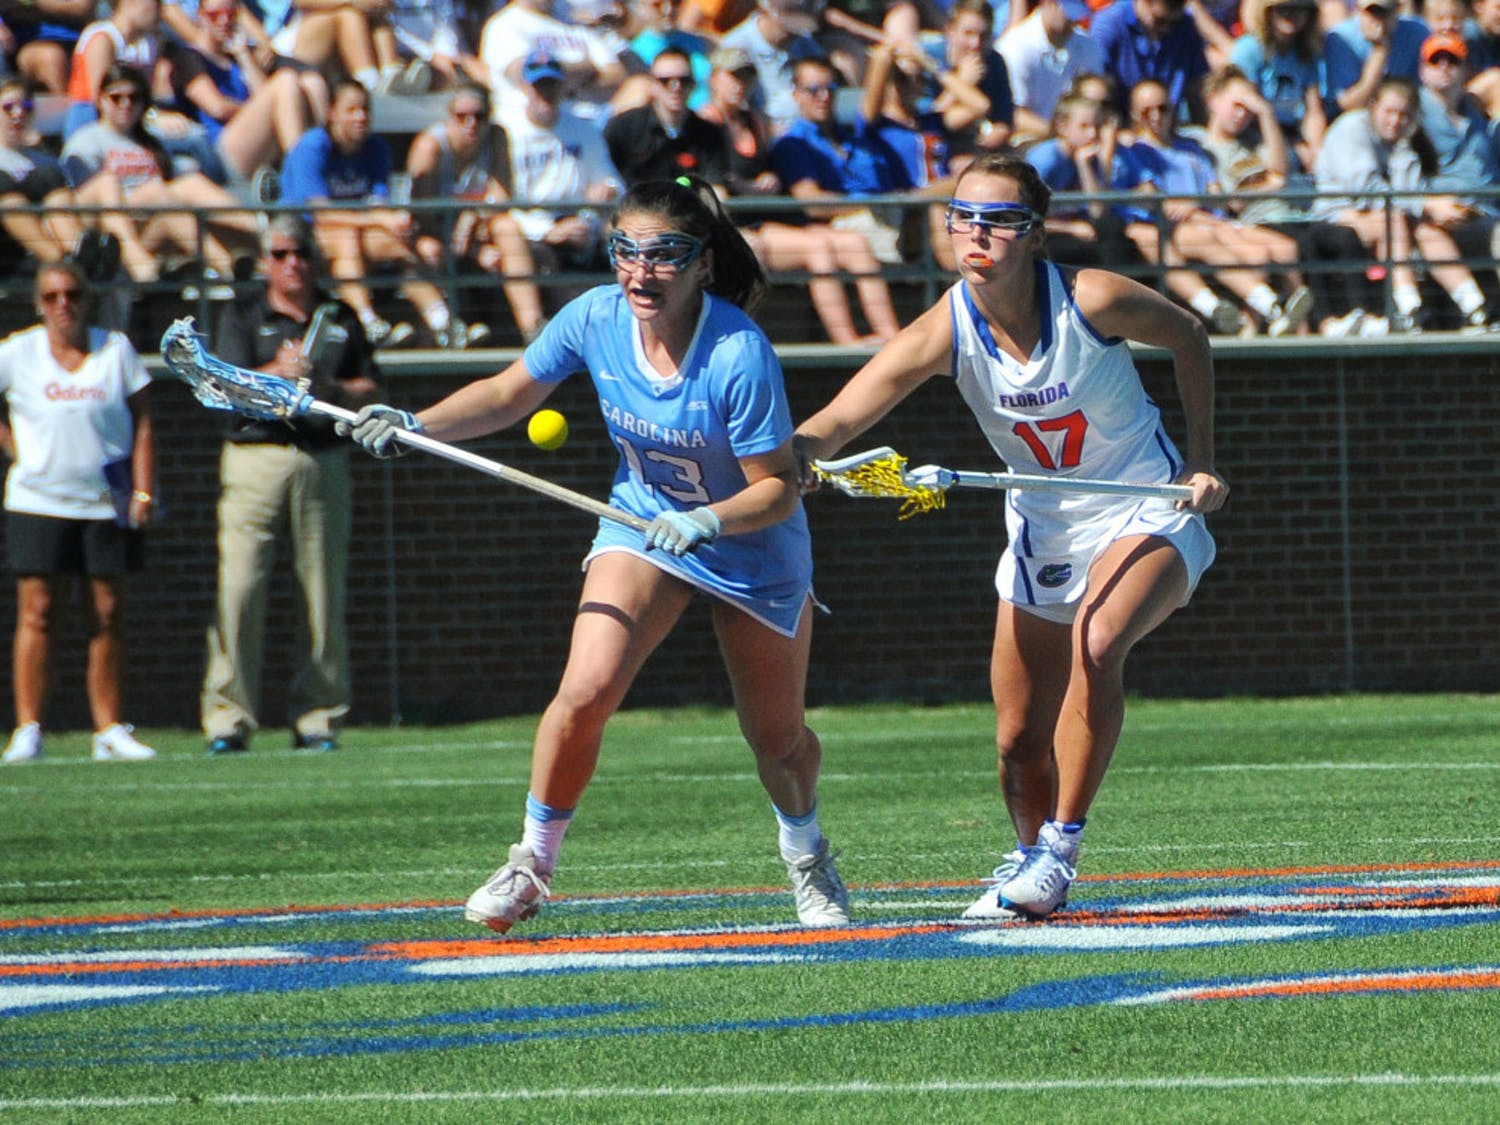 Florida attacker Mollie Stevens (right) chases the ball in UF's loss to North Carolina on Feb. 11.